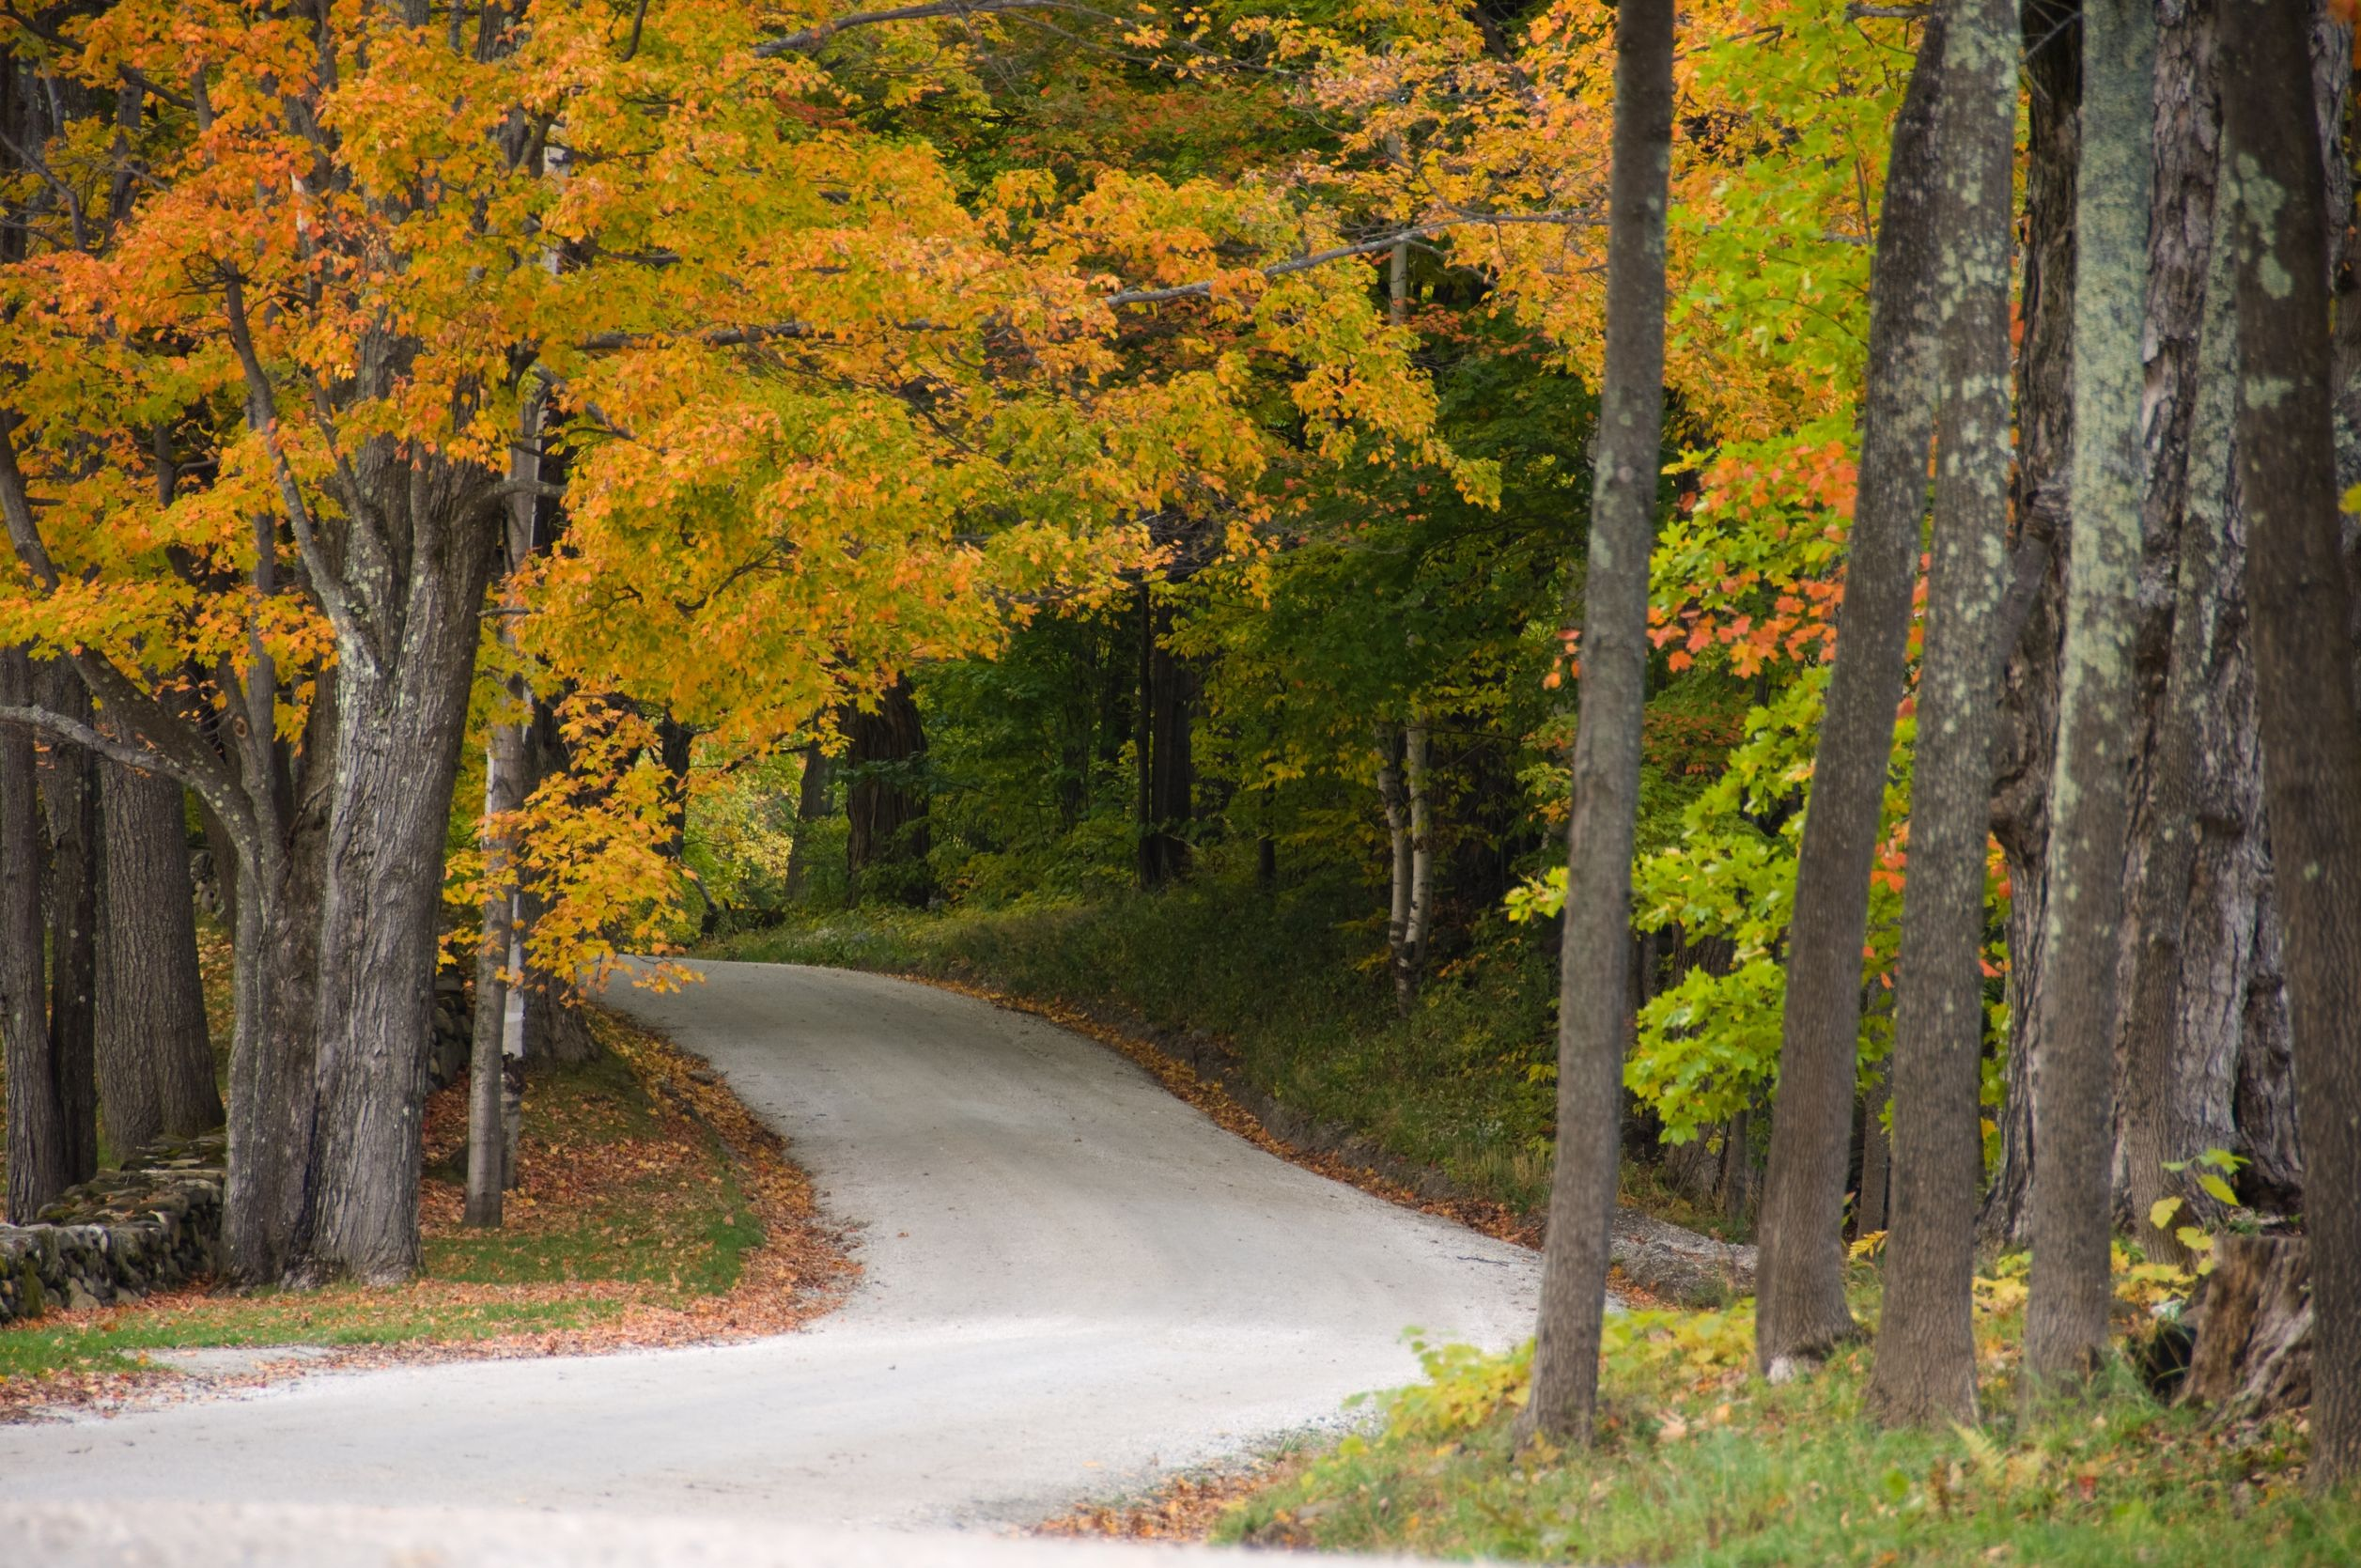 gravel road beneath colorful autumnal trees